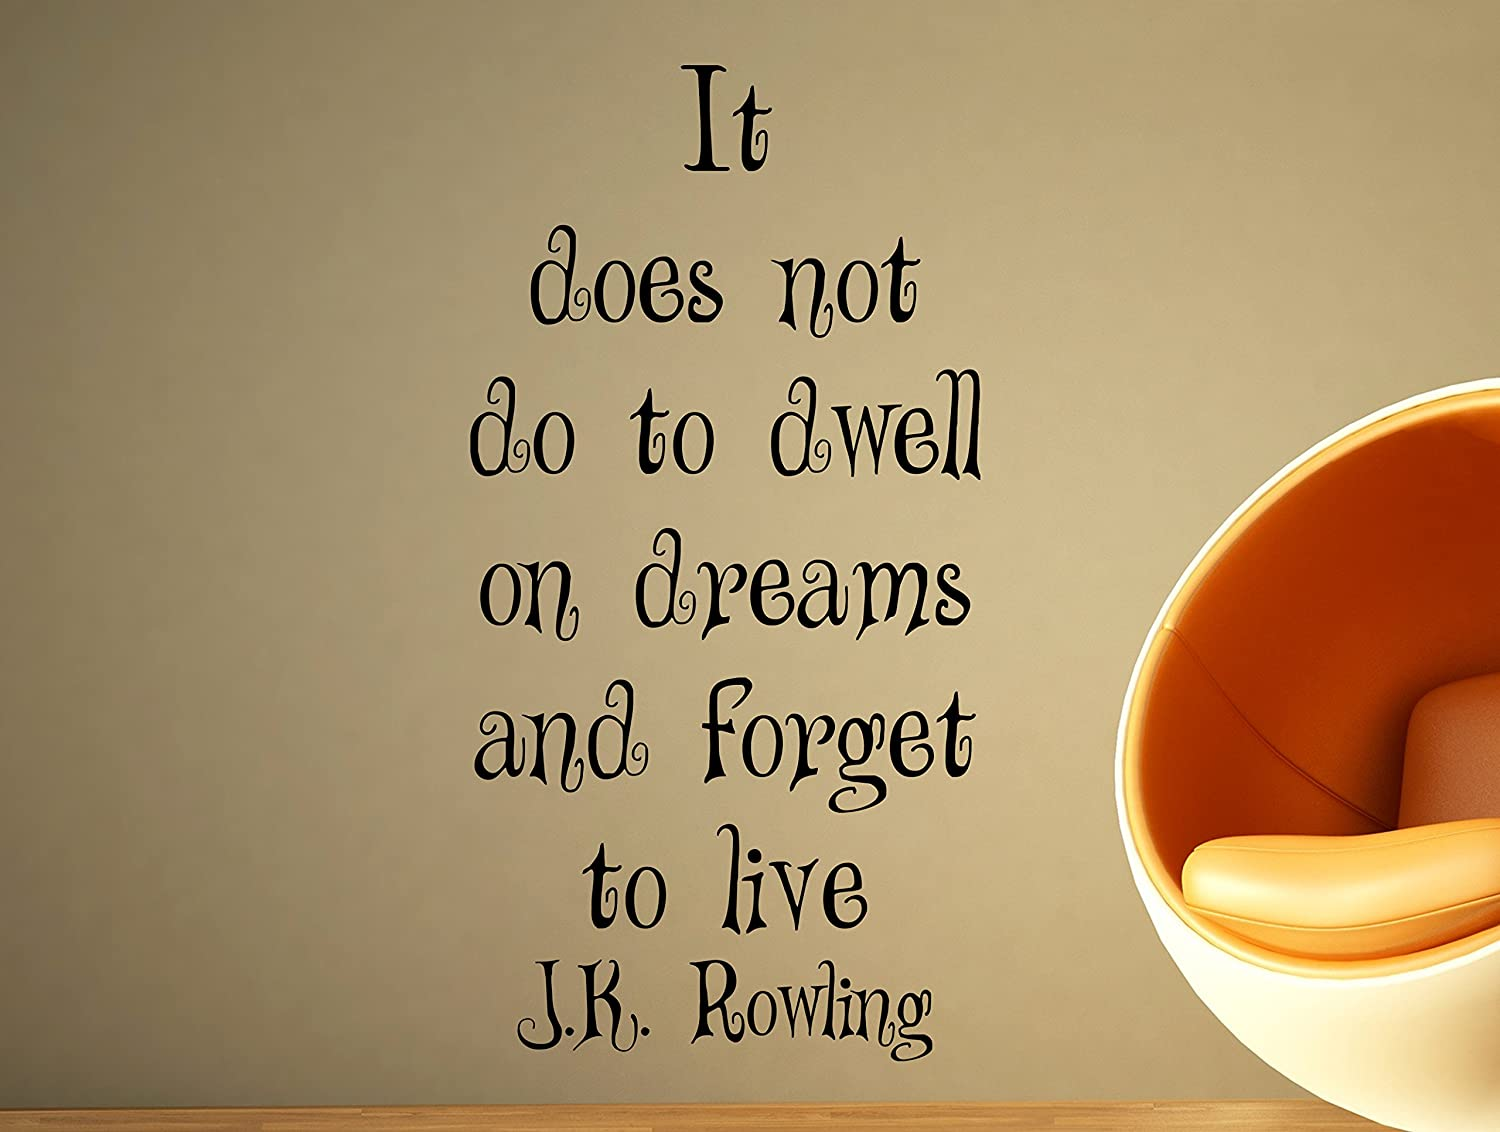 Amazon jk rowling motivational typography quote wall decal amazon jk rowling motivational typography quote wall decal office home decor it does not do to dwell on dreams 34x17 inches home kitchen amipublicfo Image collections